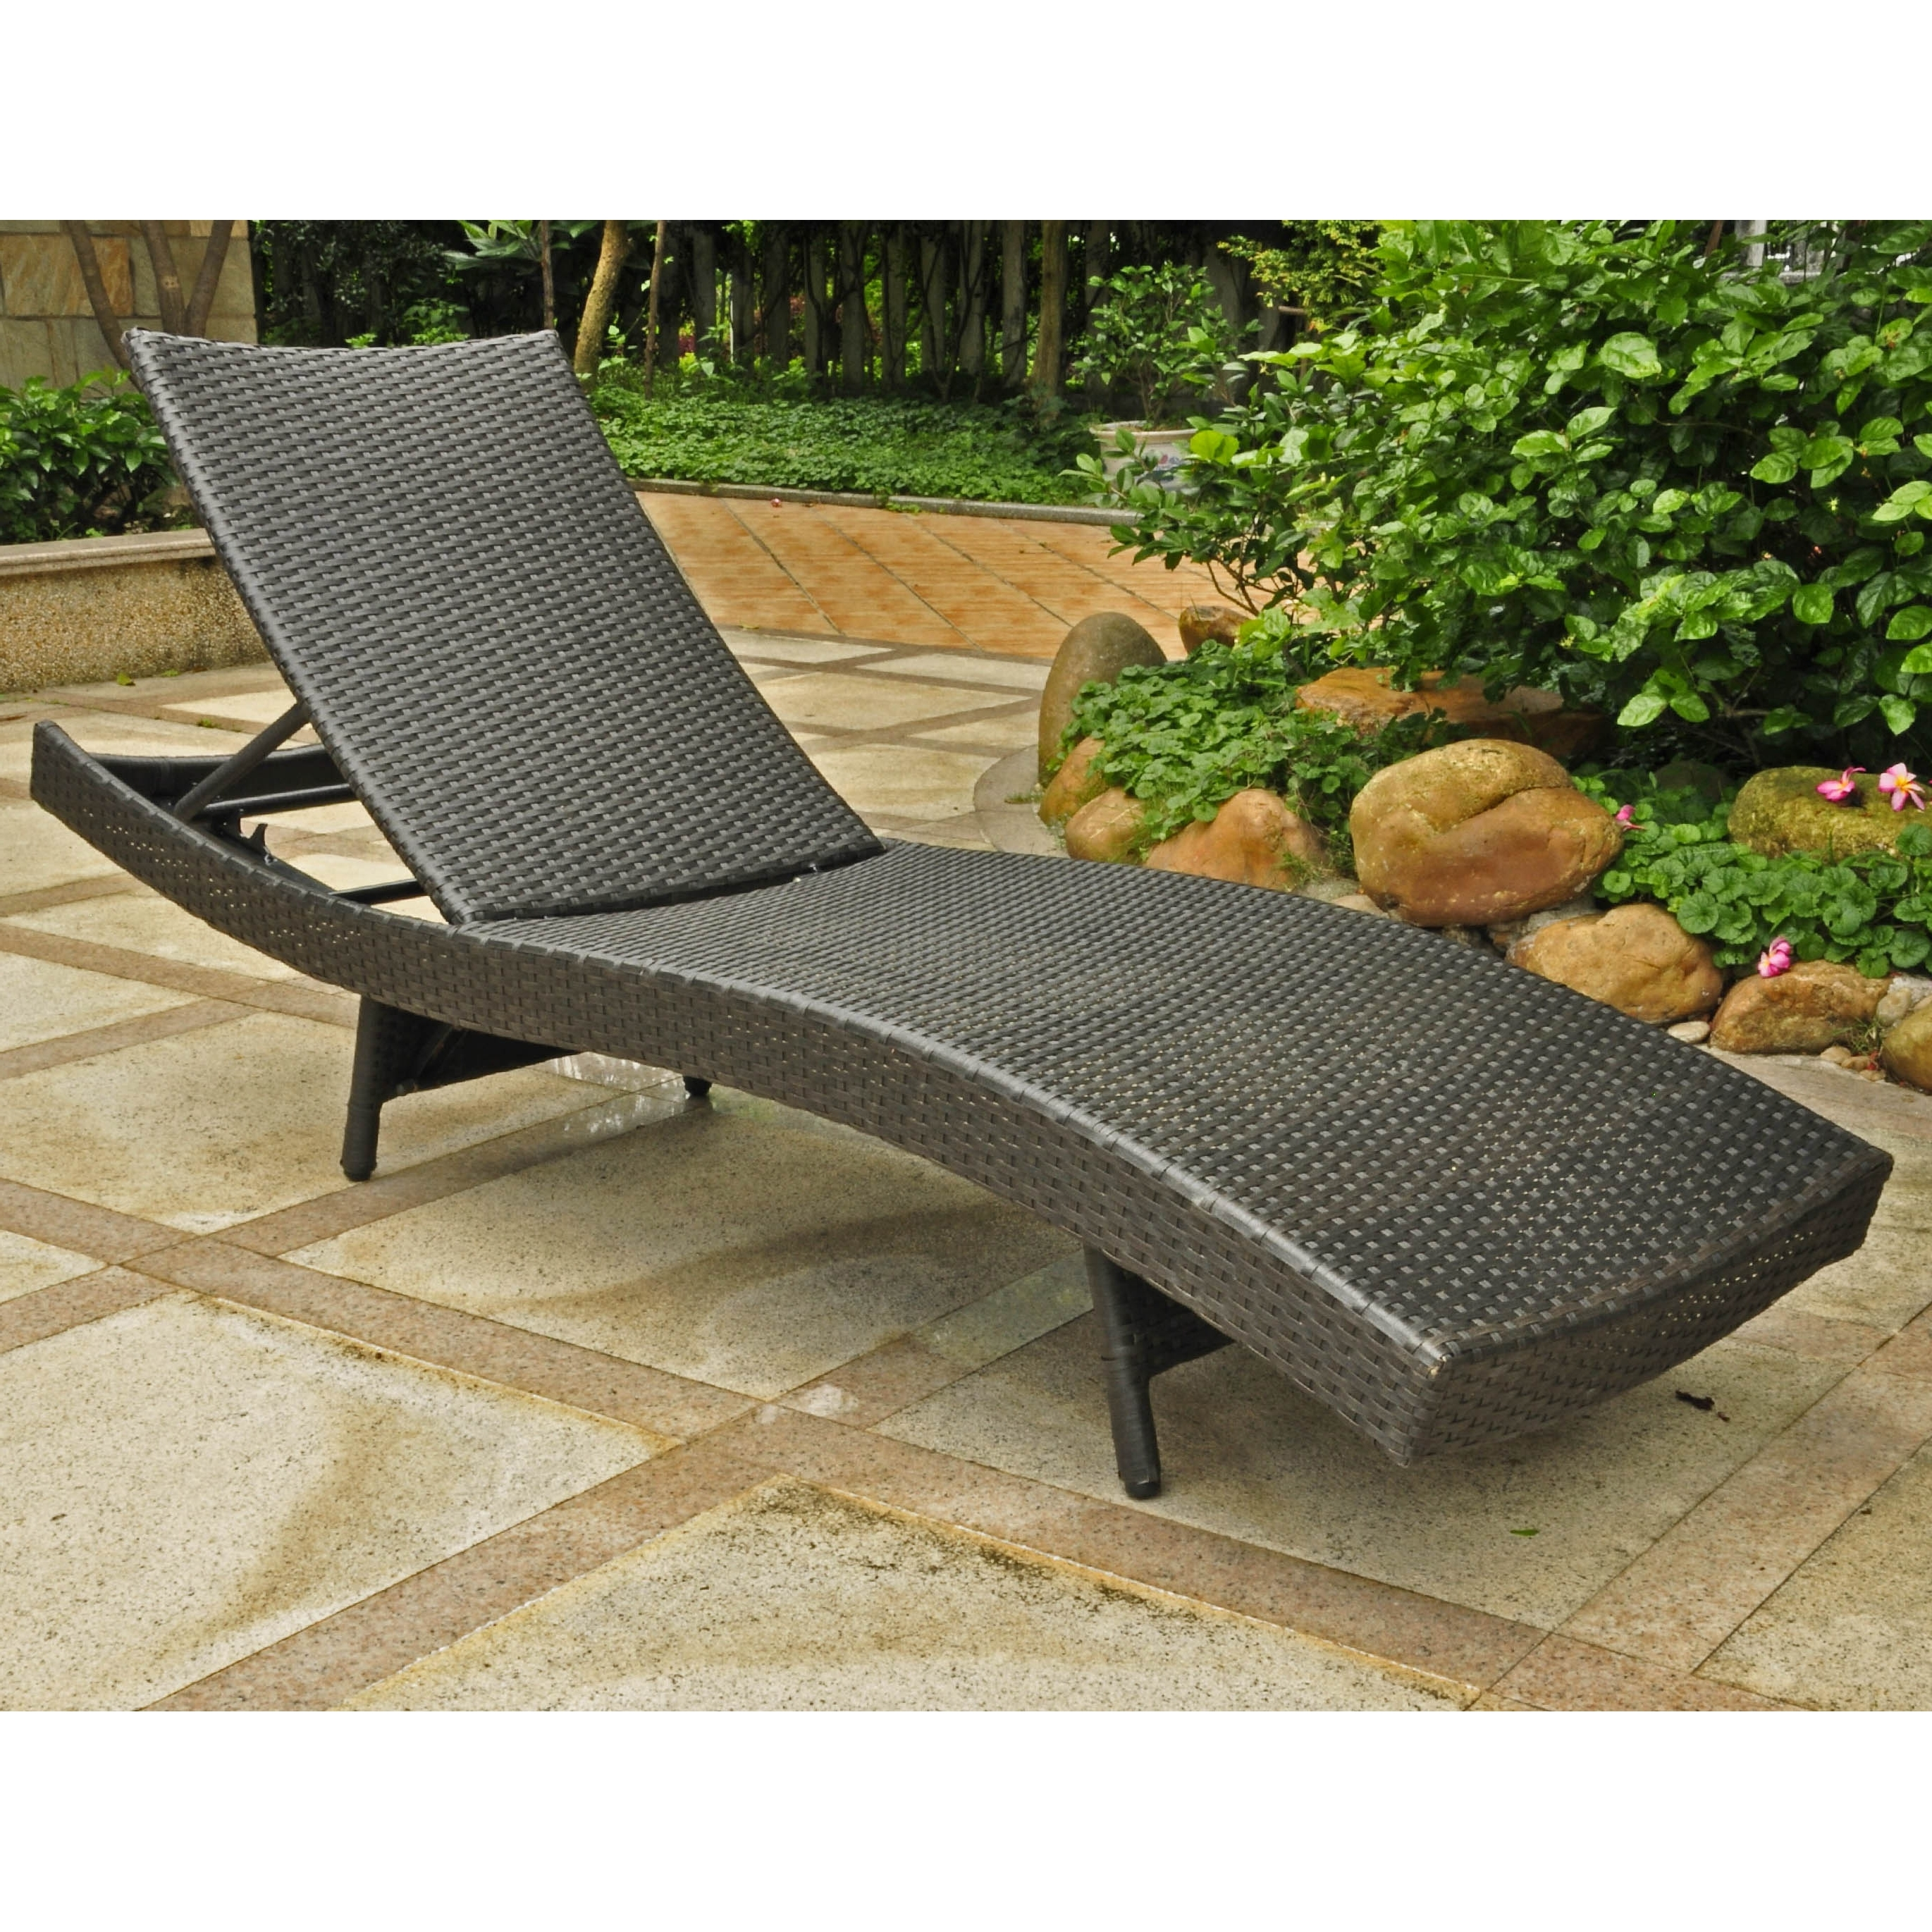 Most Recently Released Chaise Lounges In Kettler Chaise Lounge Chairs (View 11 of 15)